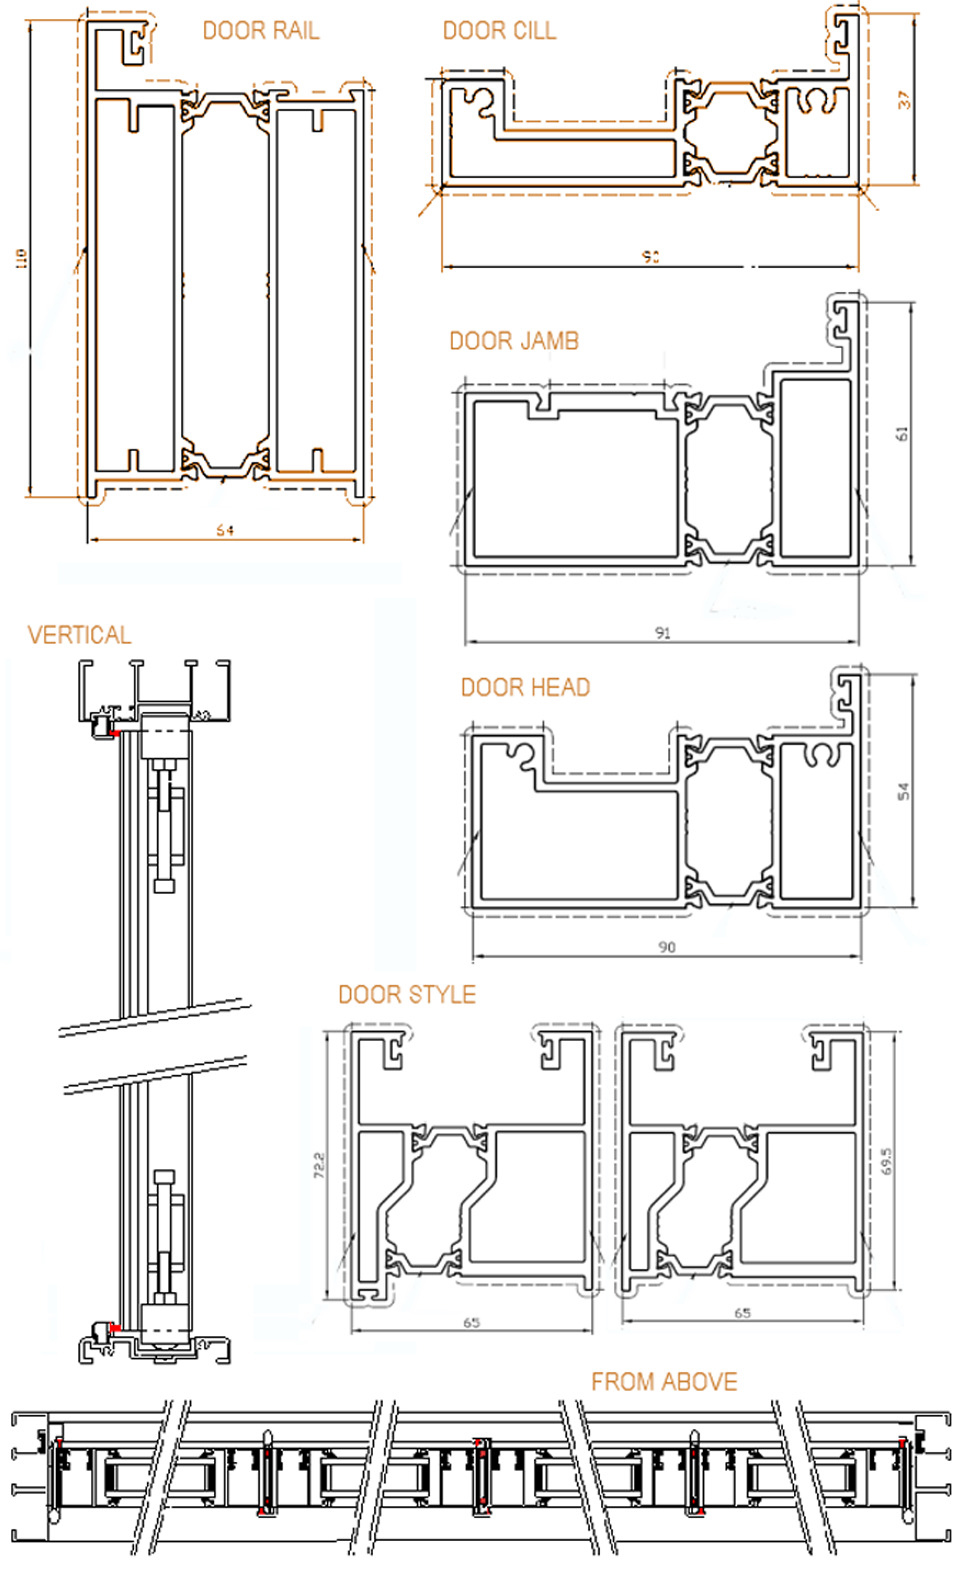 technical details and drawings